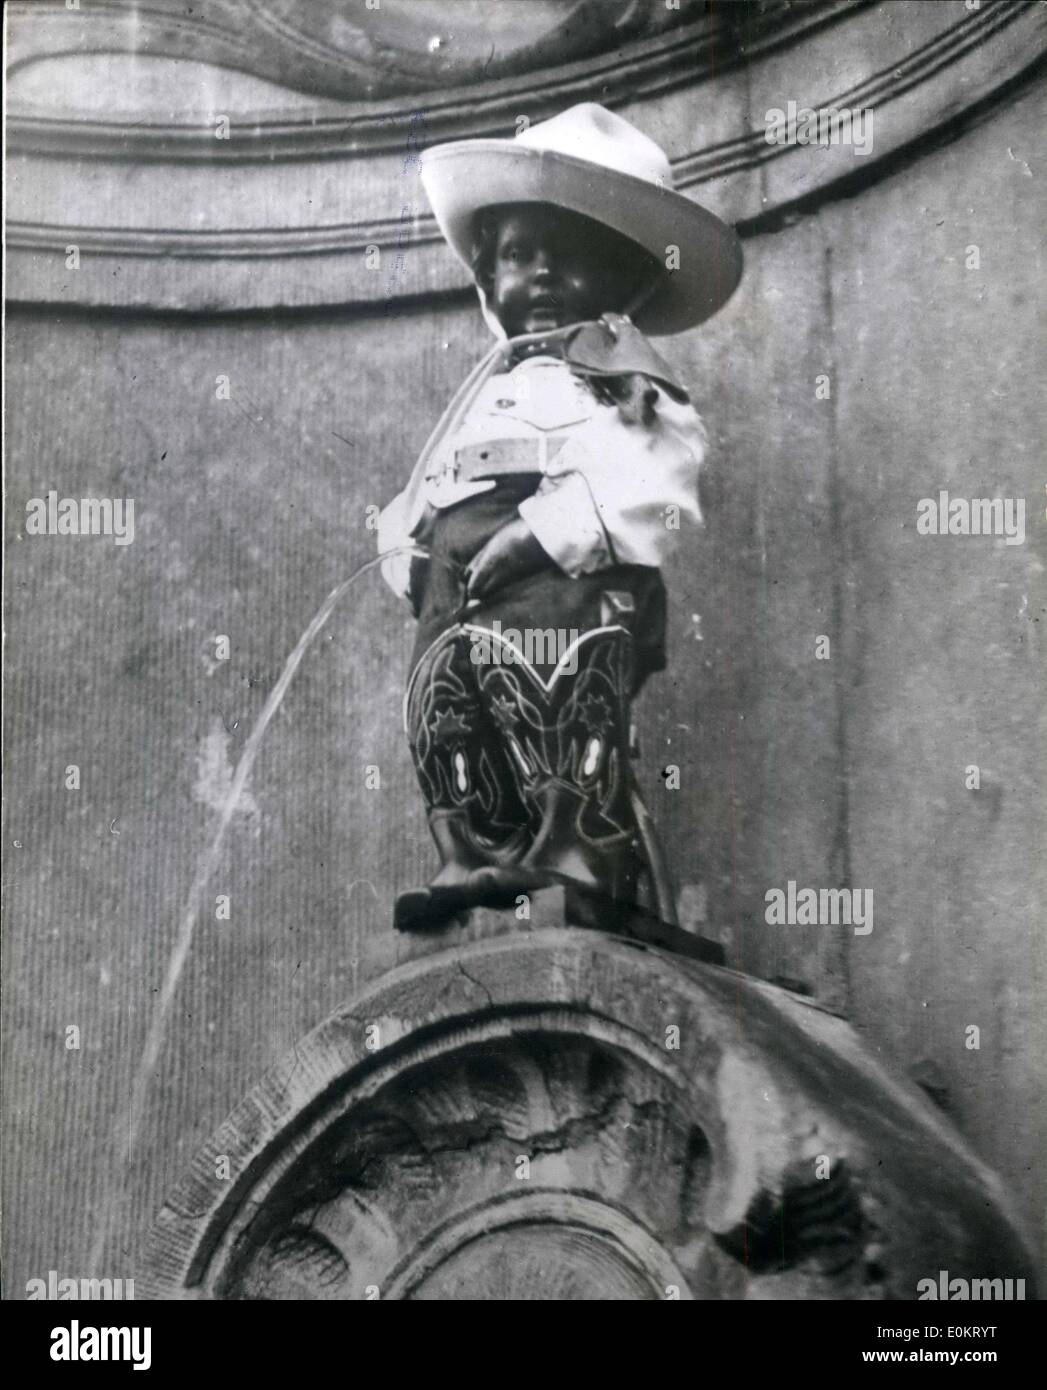 Oct. 14, 1949 - ''Manneken'' all dressed up - and Nowhere to go. Famous Brussels Statue becomes A ''Cowboy''. Photo shows ''Manneken'' the famous Brussels landmark, depicting and nnocent youth - took on a new role - when a practical joker dressed him up in cowboy clothes - but the water continued to flow. - Stock Image